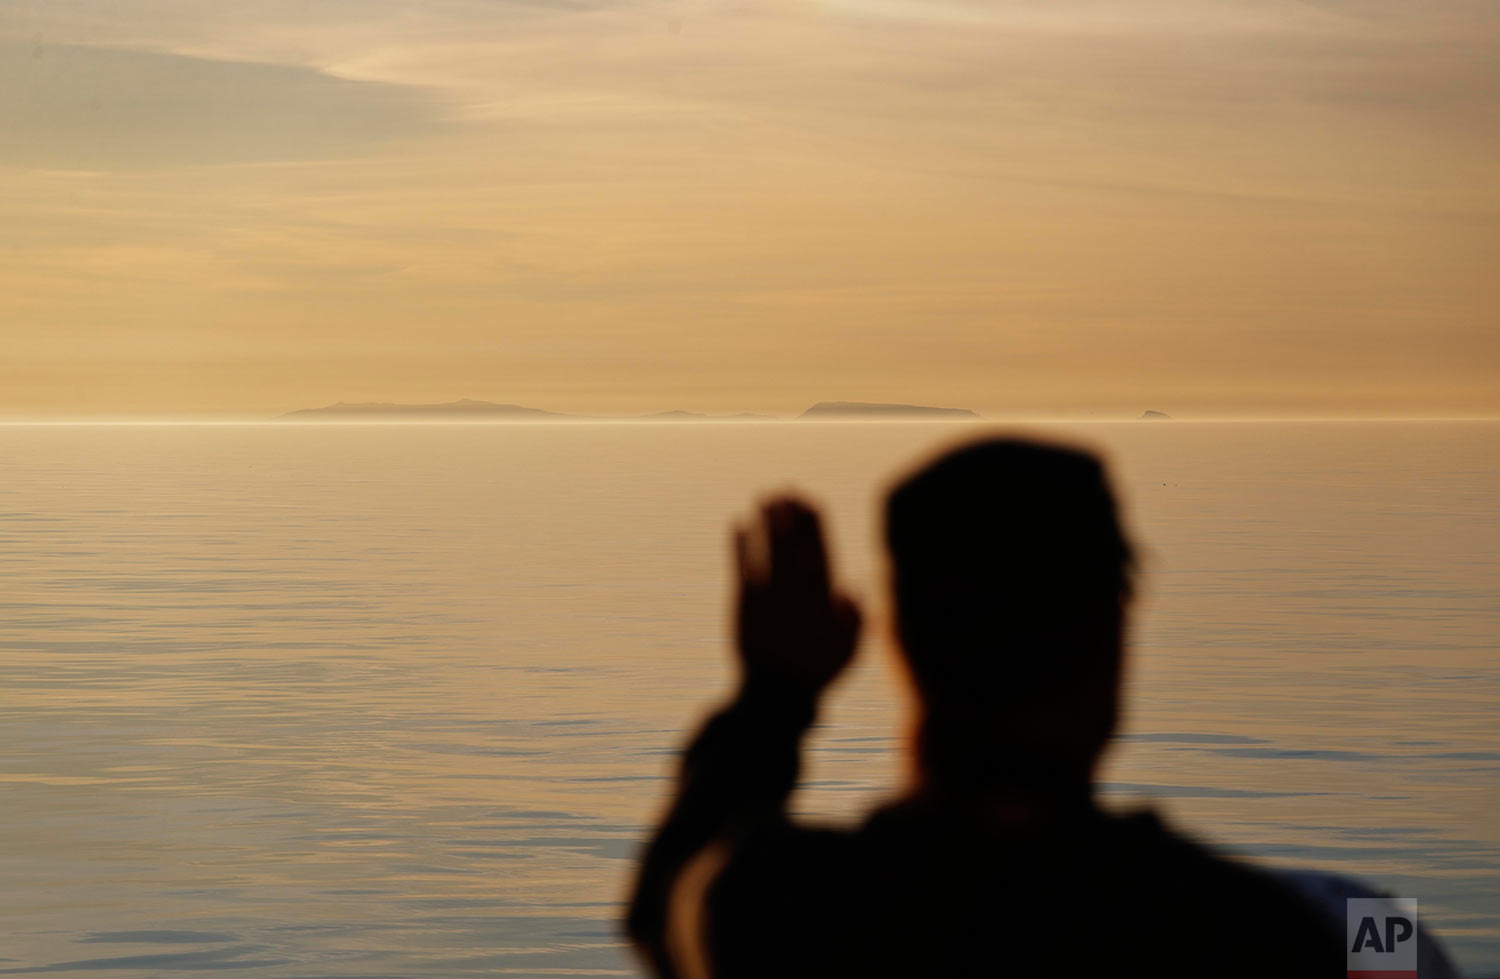 Researcher Ari Laakso shields his eyes from the midnight sun while approaching the American island of Little Diomede, Alaska, right, and the Russian island of Big Diomede, left, as the Finnish icebreaker MSV Nordica sails along the international date line through the Bering Strait, Friday, July 14, 2017. The international date line divides the two islands, putting them currently 20 hours apart despite roughly 2.4 miles (3.8 kilometers) between them. Due to this time difference, Little Diomede is sometimes referred to as Yesterday Isle and Big Diomede as Tomorrow Island. (AP Photo/David Goldman)